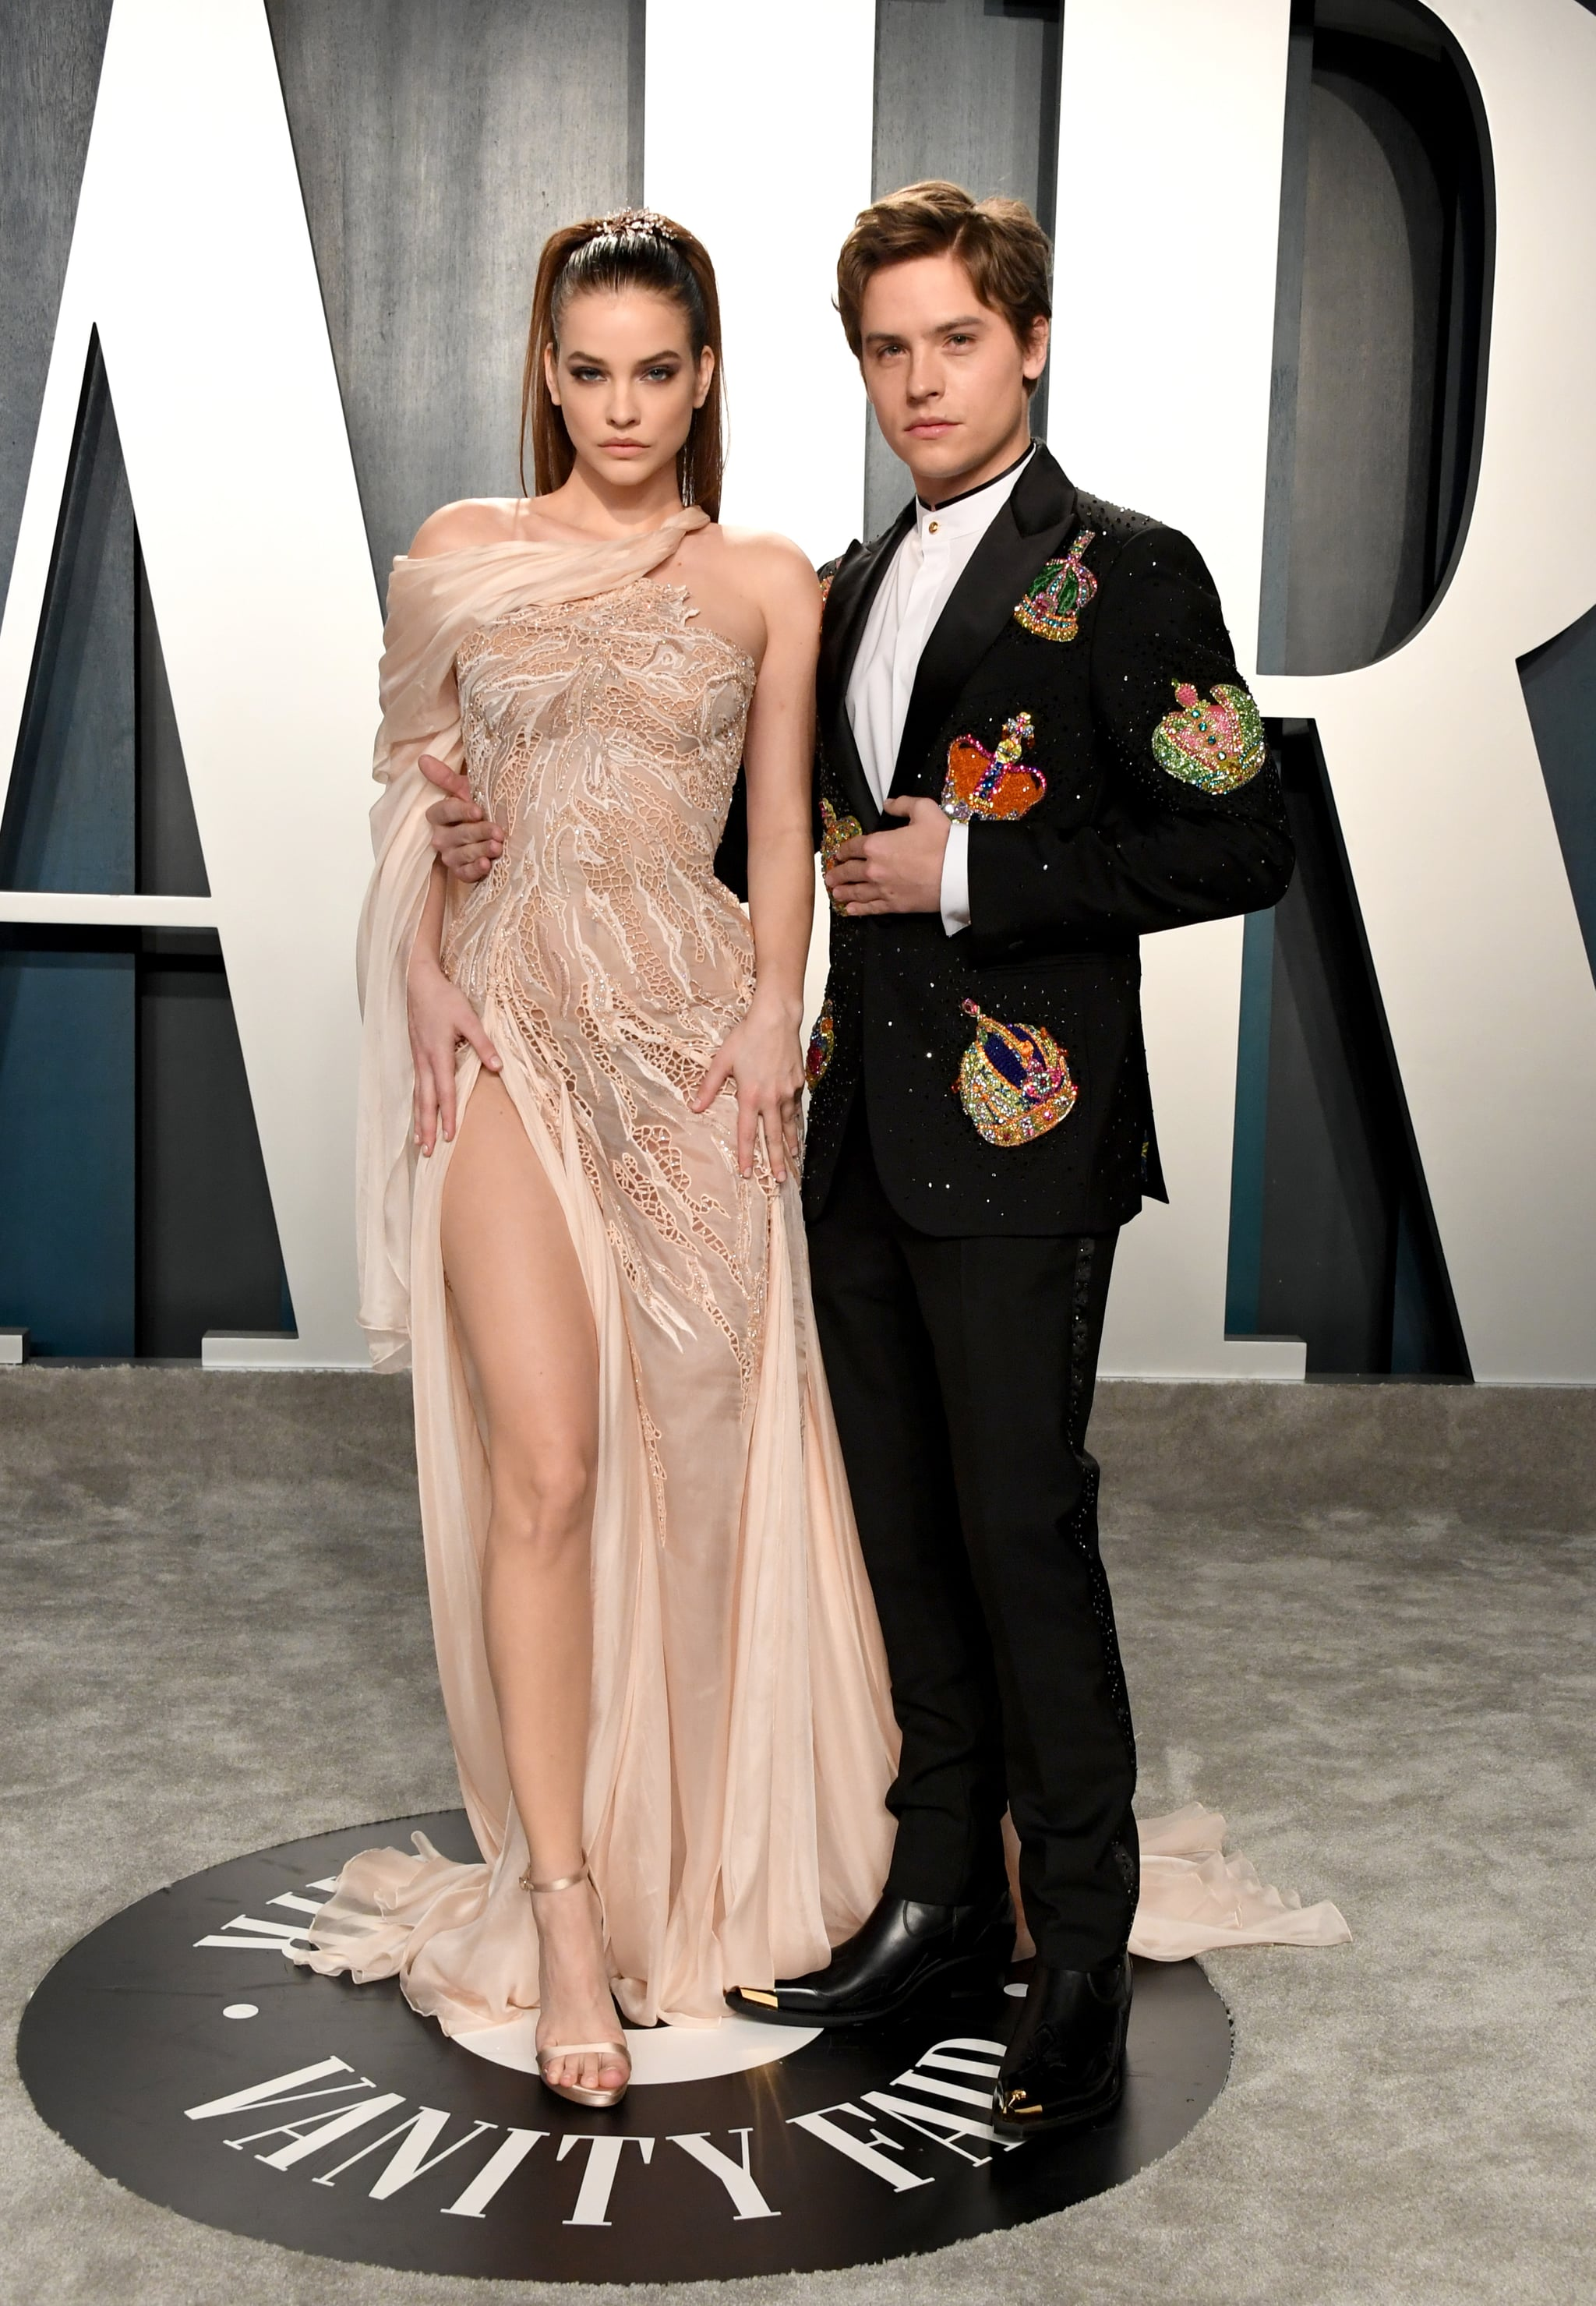 Barbara Palvin And Dylan Sprouse At The Vanity Fair Oscars Afterparty 2020 The Glamour Continues These Oscars Afterparty Dresses Will Leave You In Awe Popsugar Fashion Photo 11